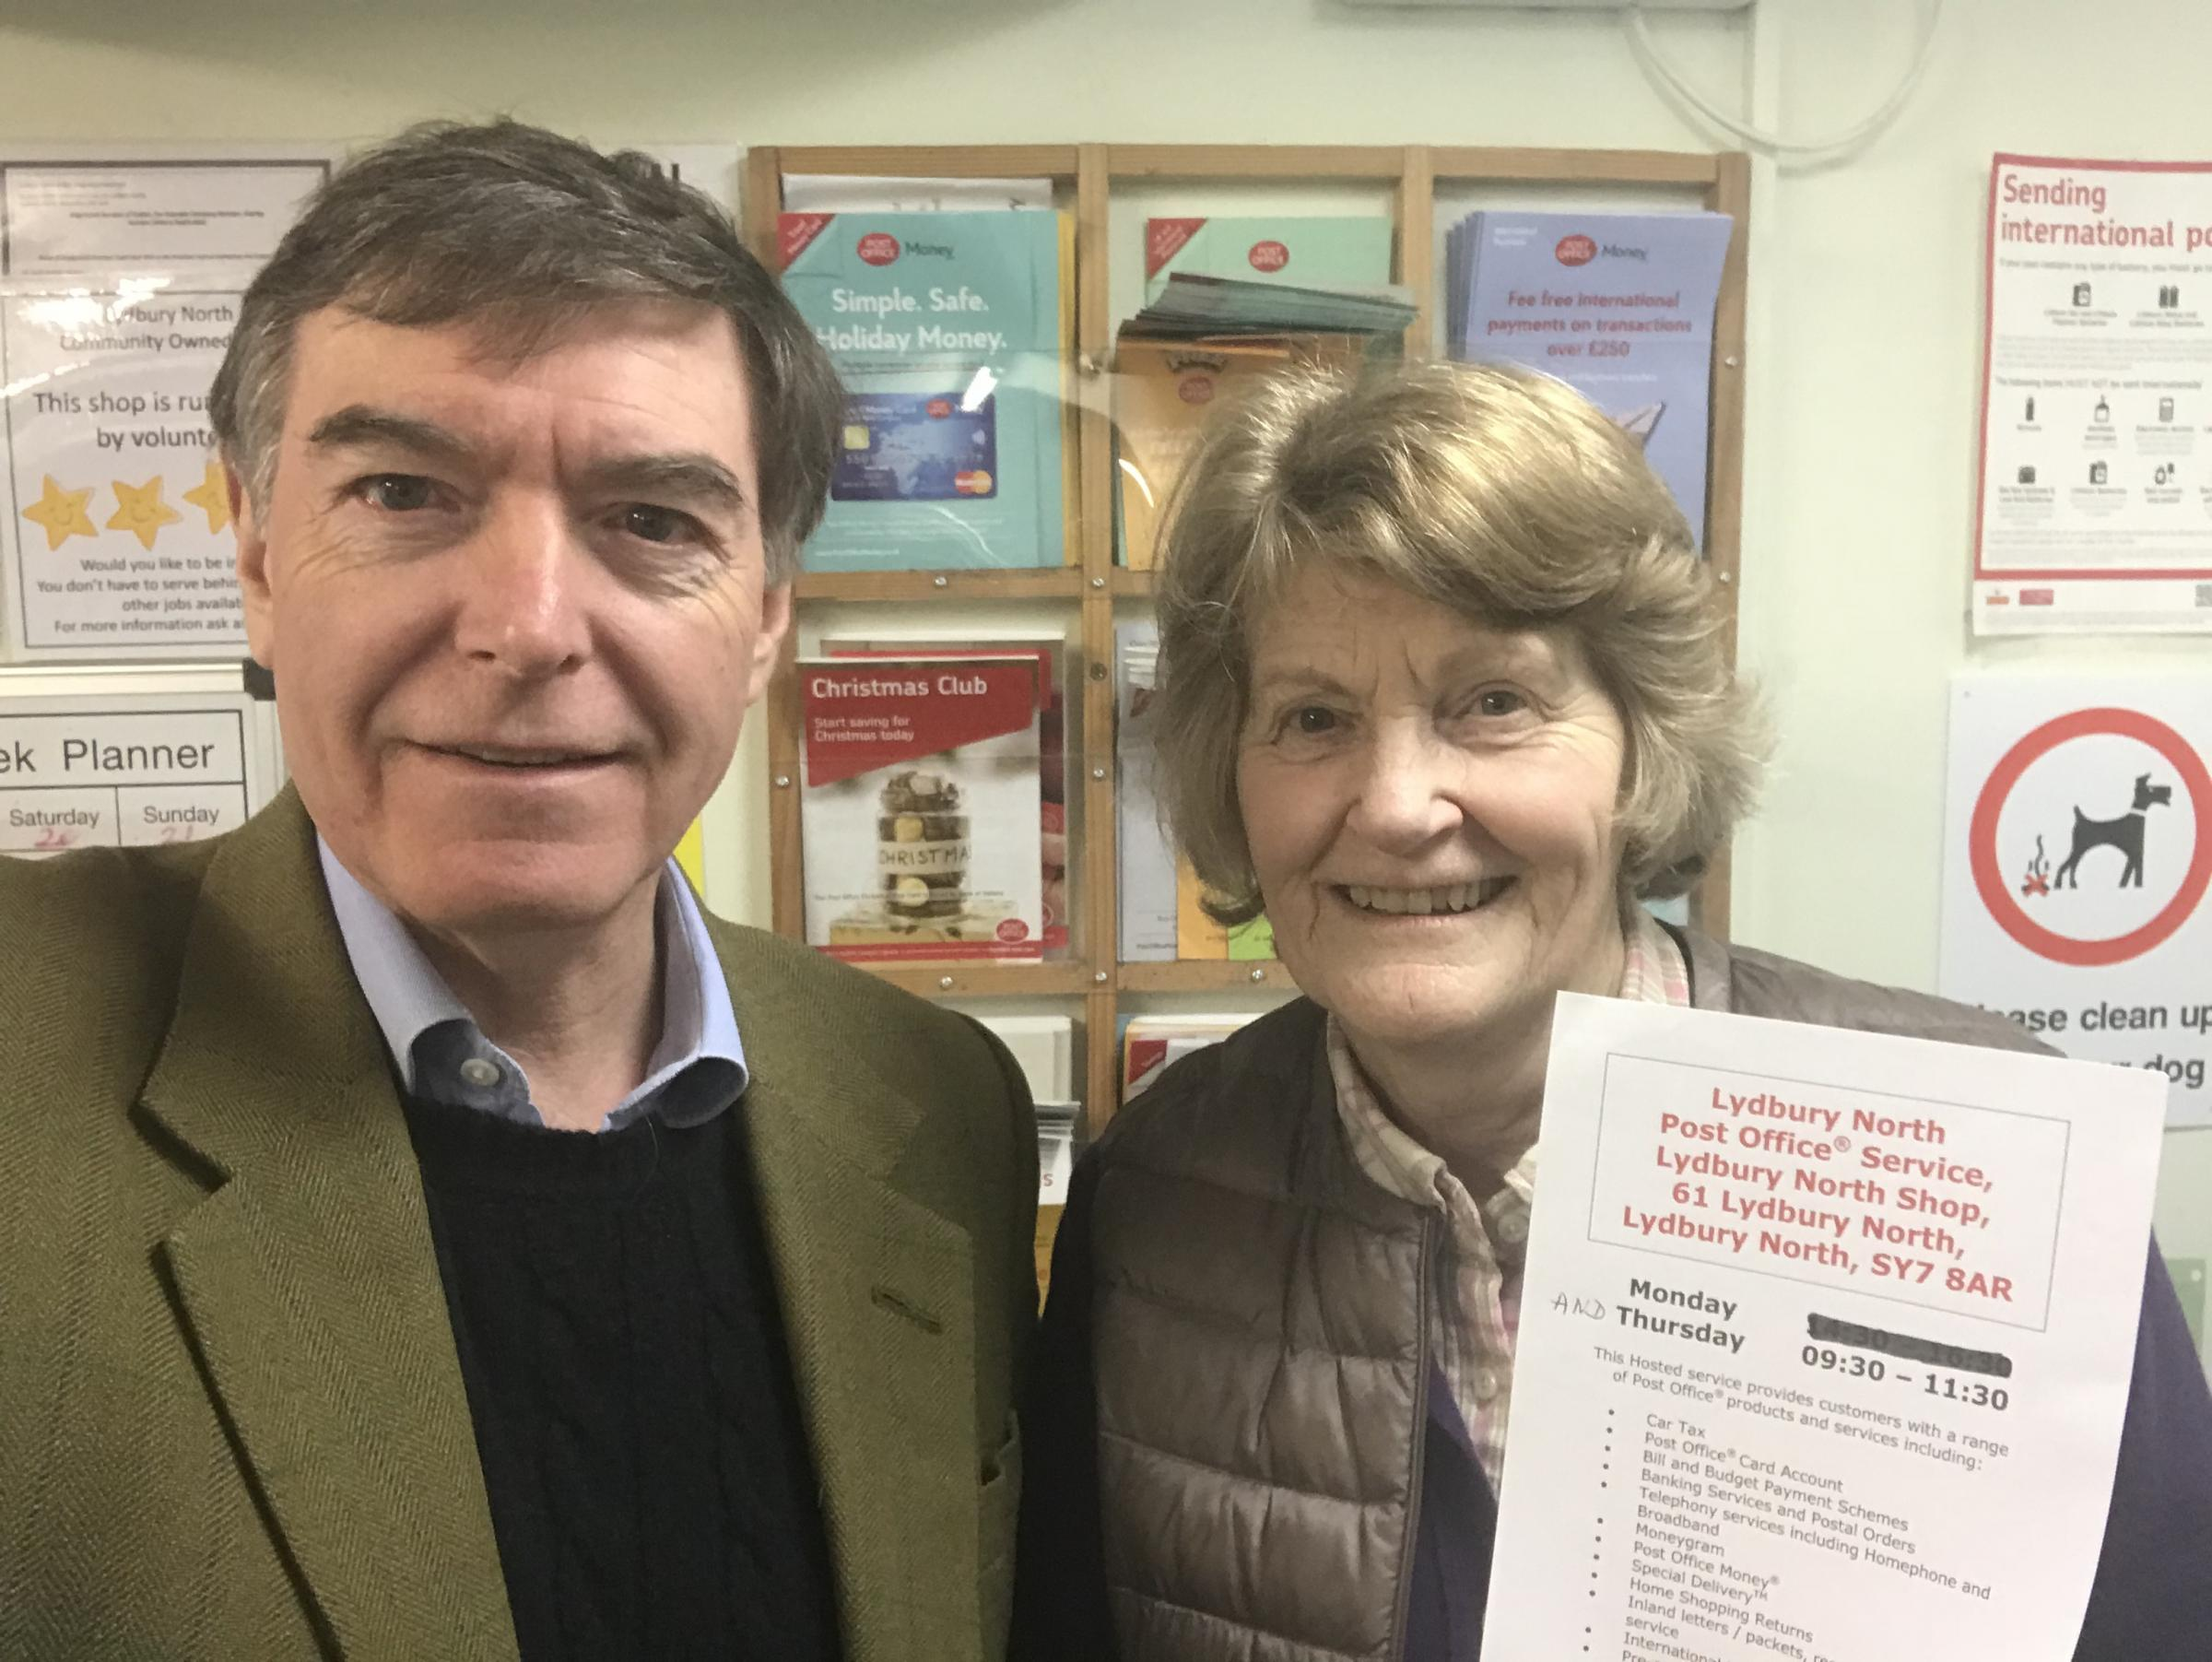 Philip Dunne MP at Lydbury North